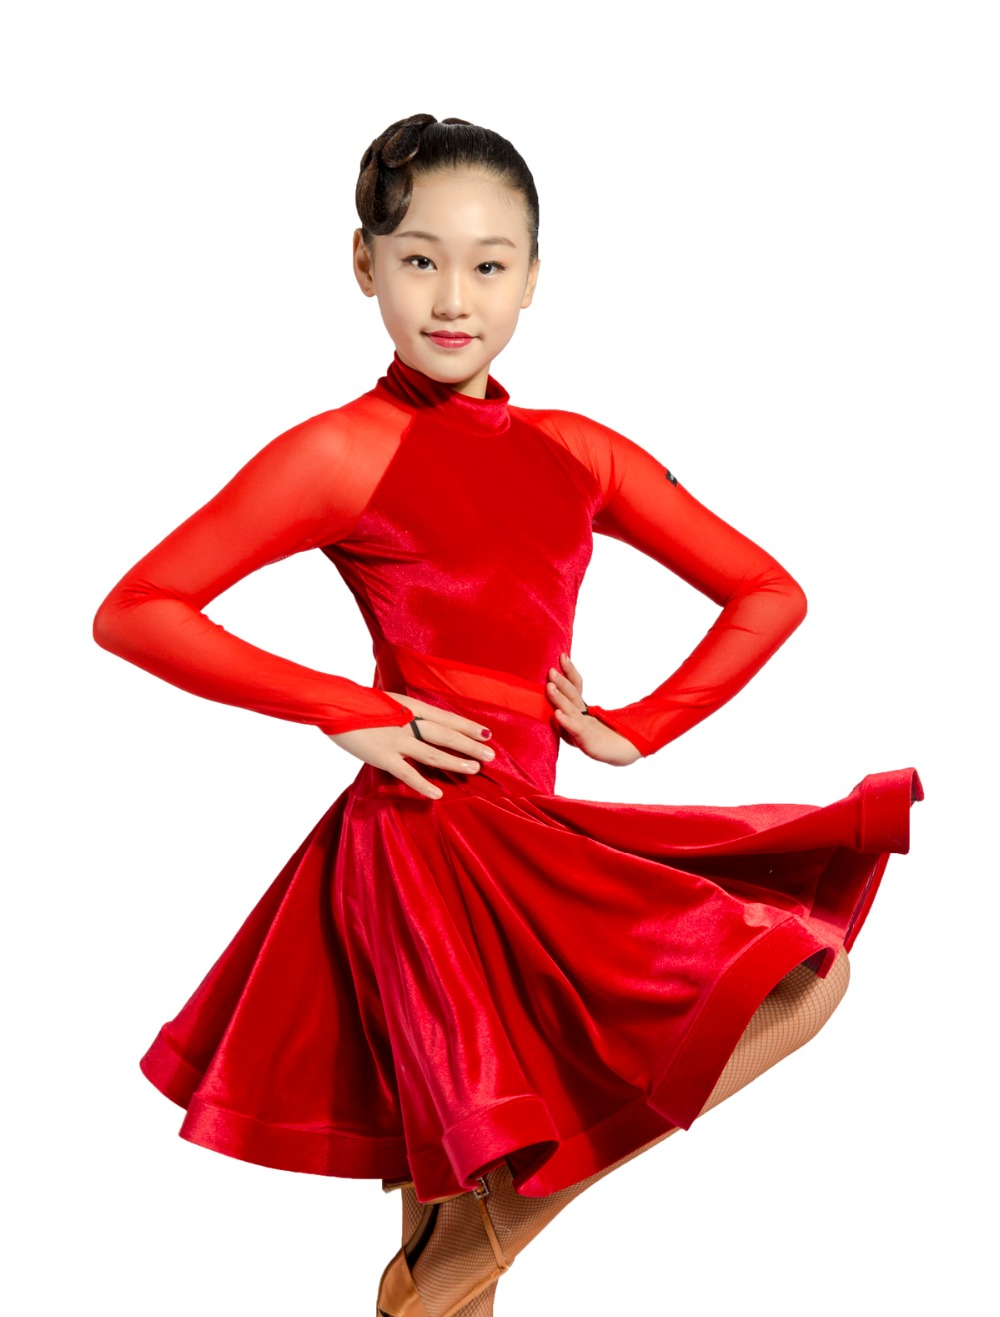 GD3102 kid latin ballroom party dance professionnel net fil et velours épissage conception performance robe pour fille - 3